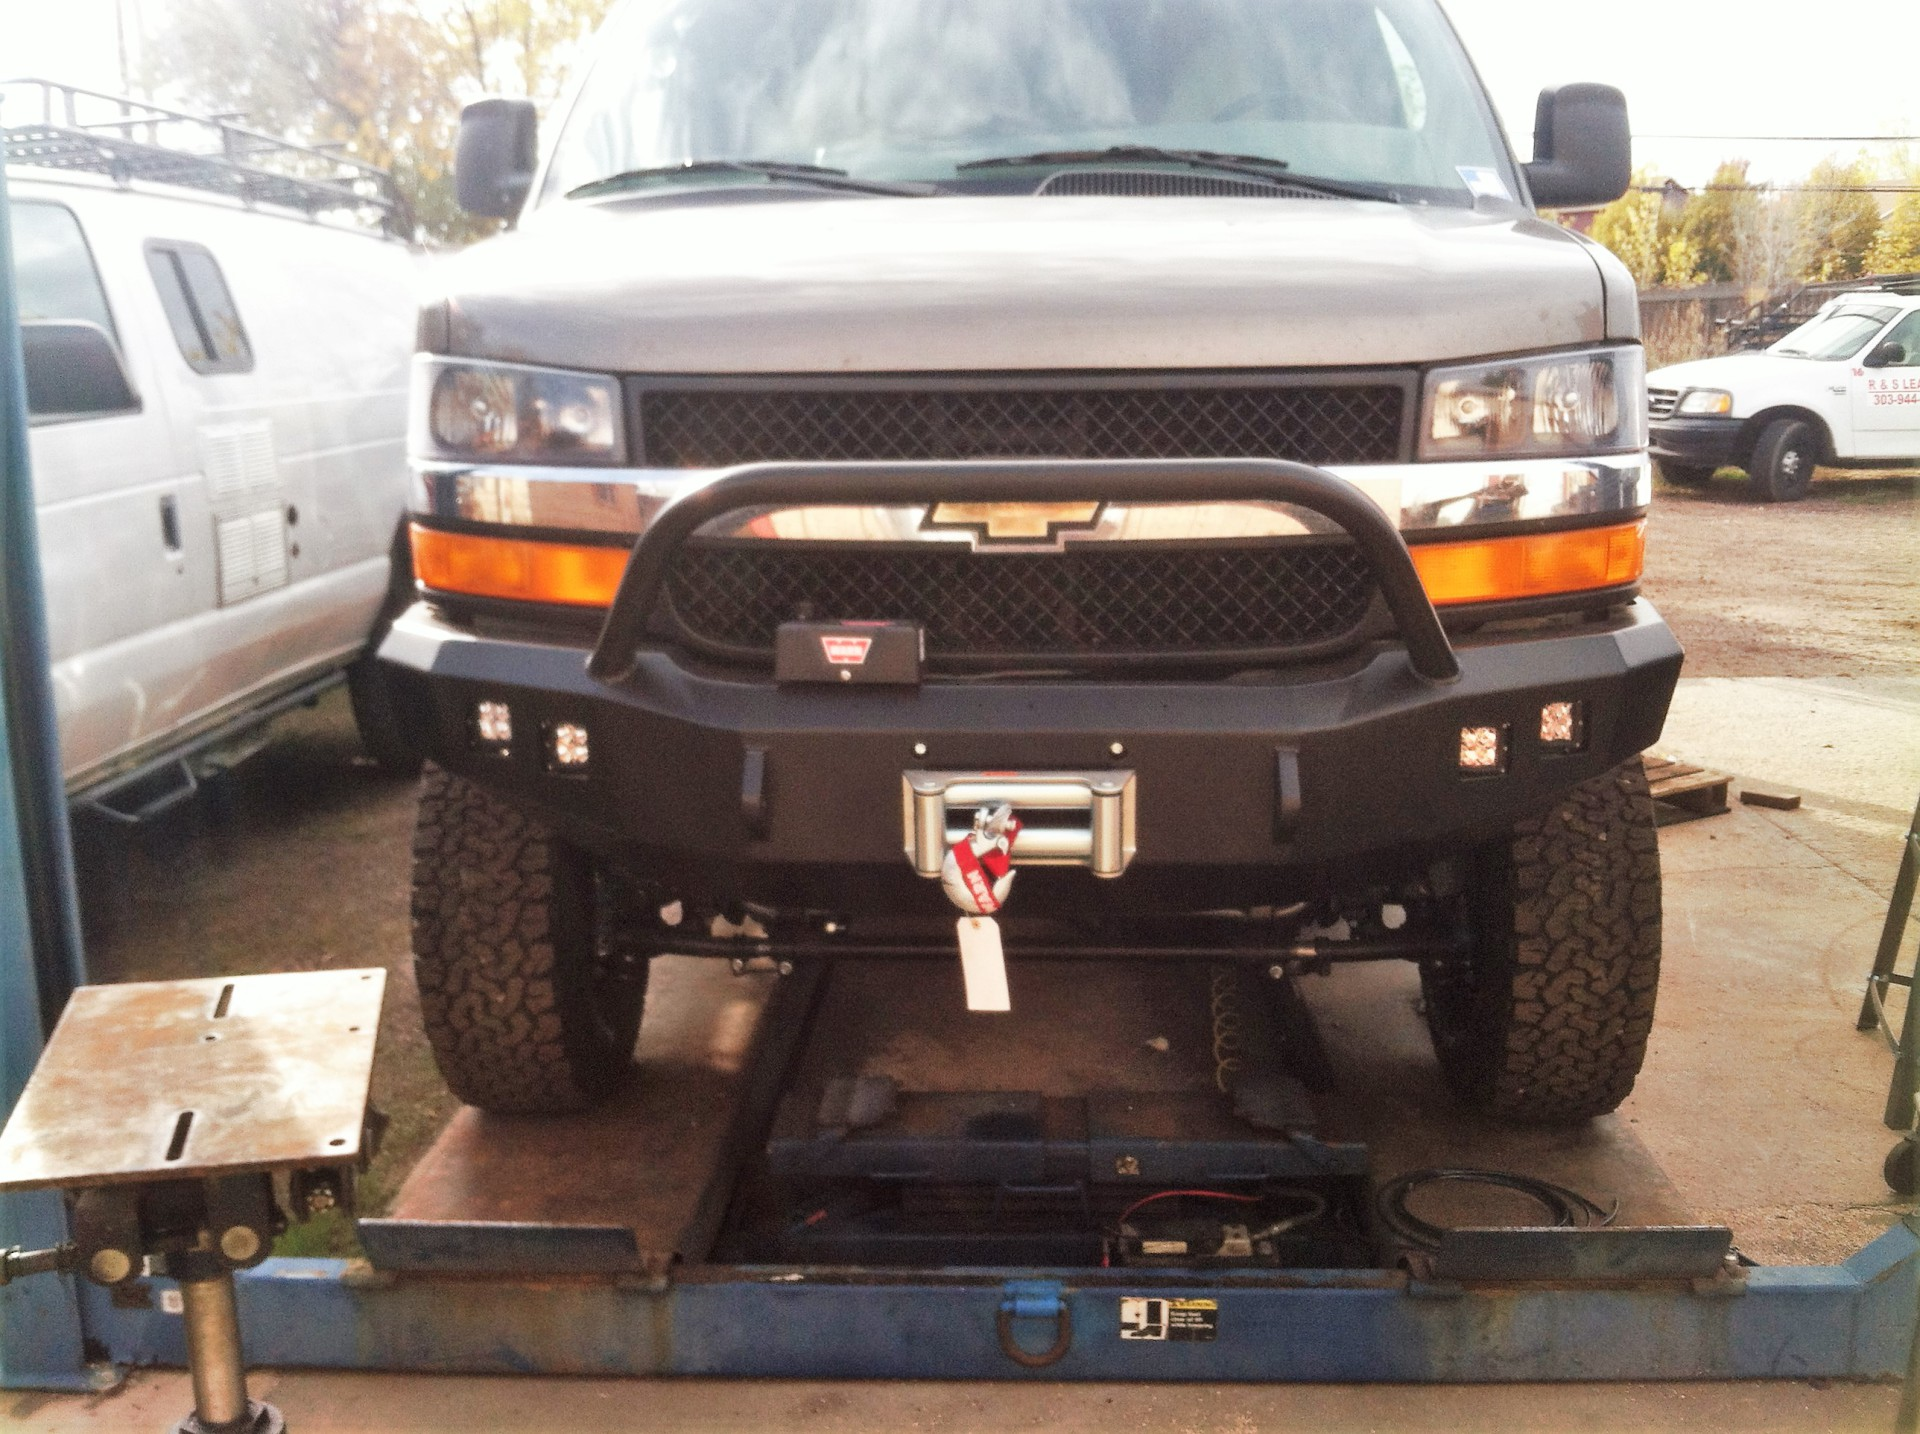 Chevy Express Roadtrek winch bumper